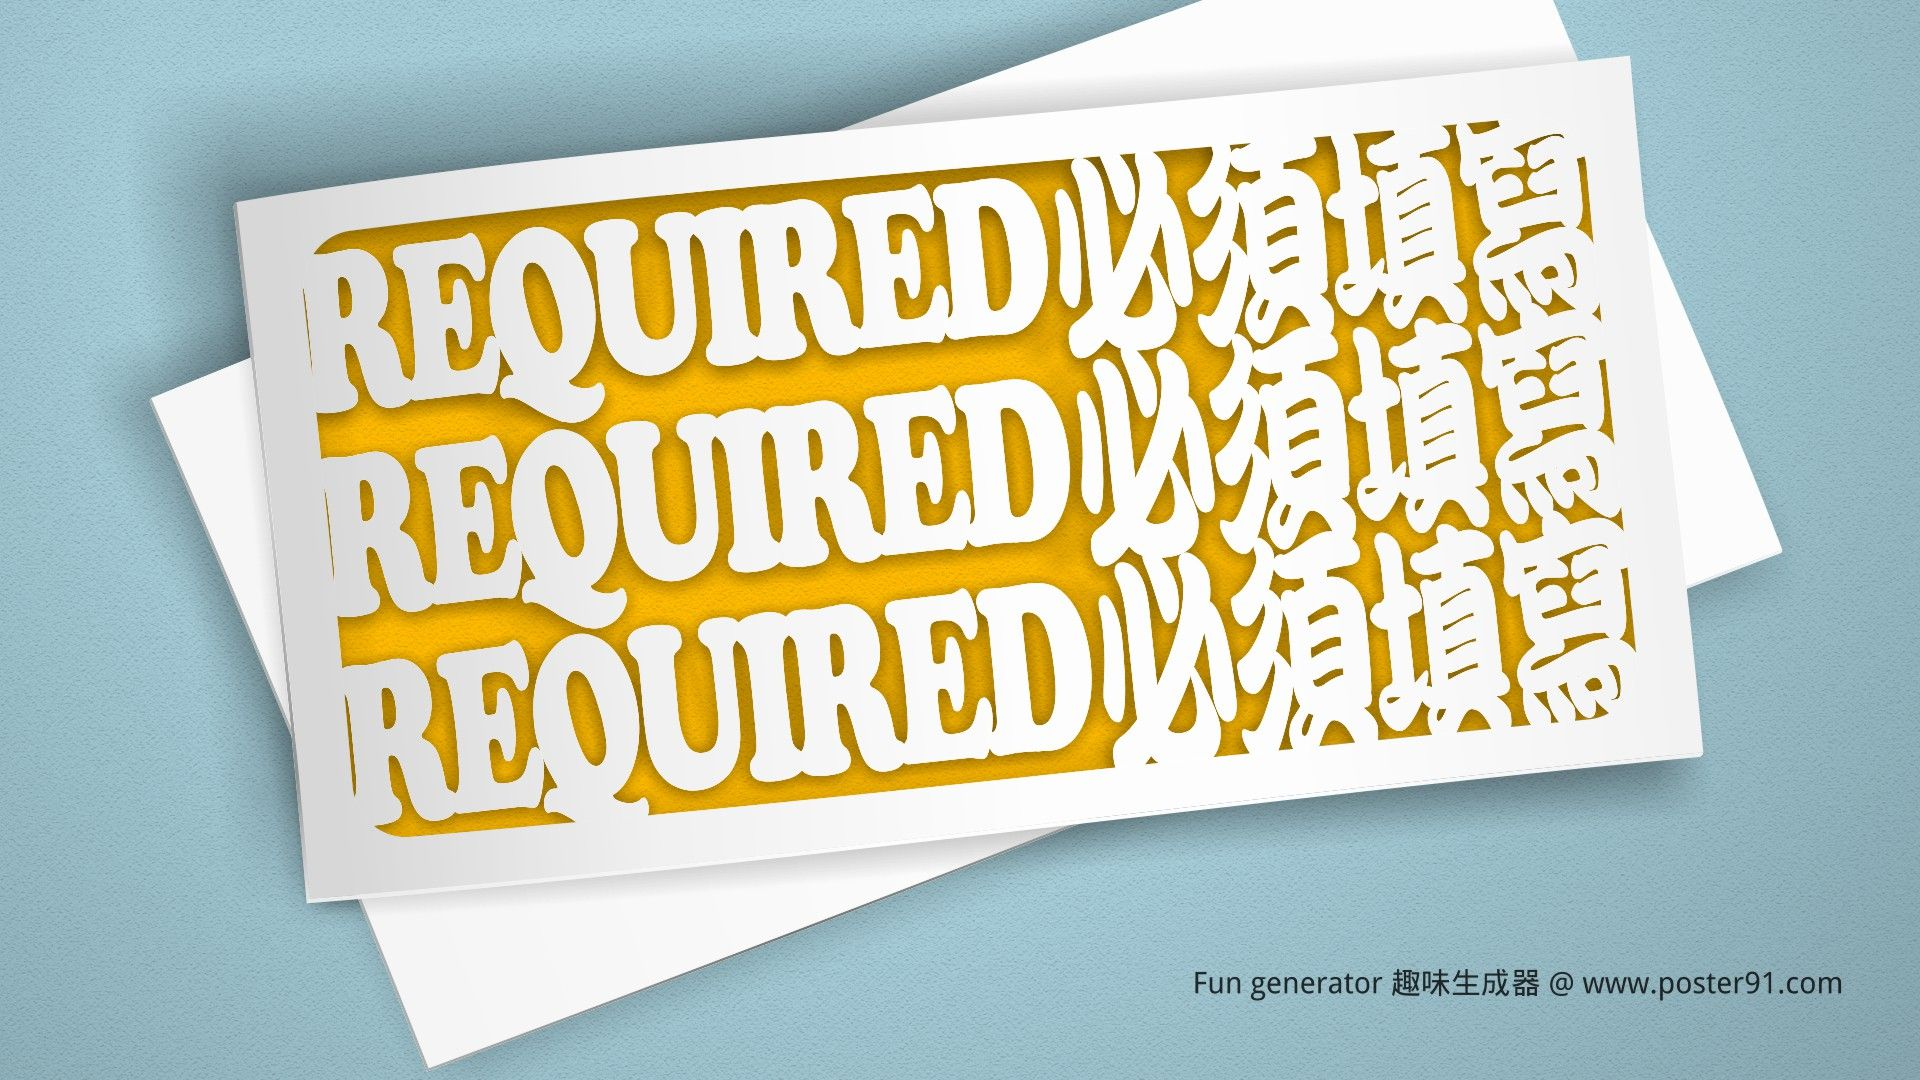 Paper Cut Greeting Card B Generator Express Any Of Your Sentiment